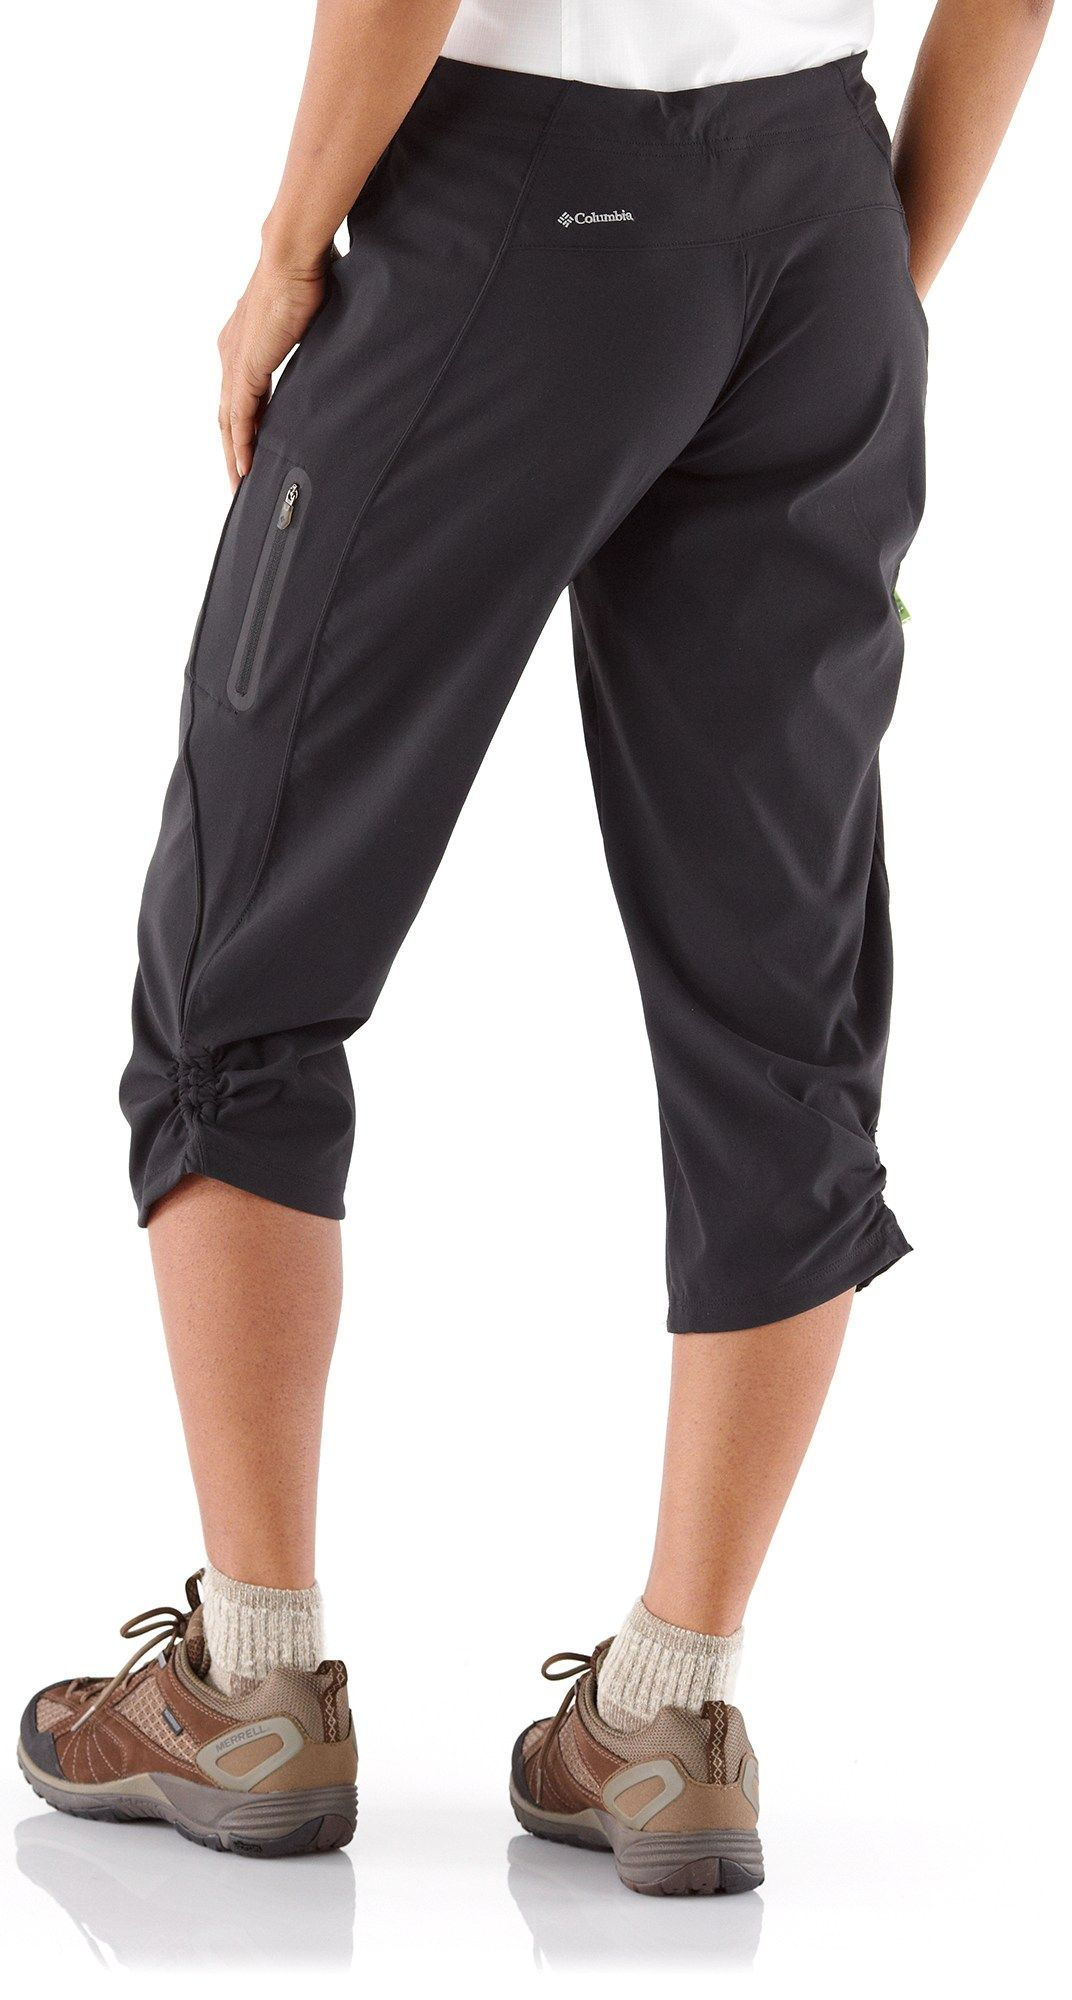 fe2999659bff9 Columbia Just Right Capri Pants - Women's - New hiking pants. grey of course